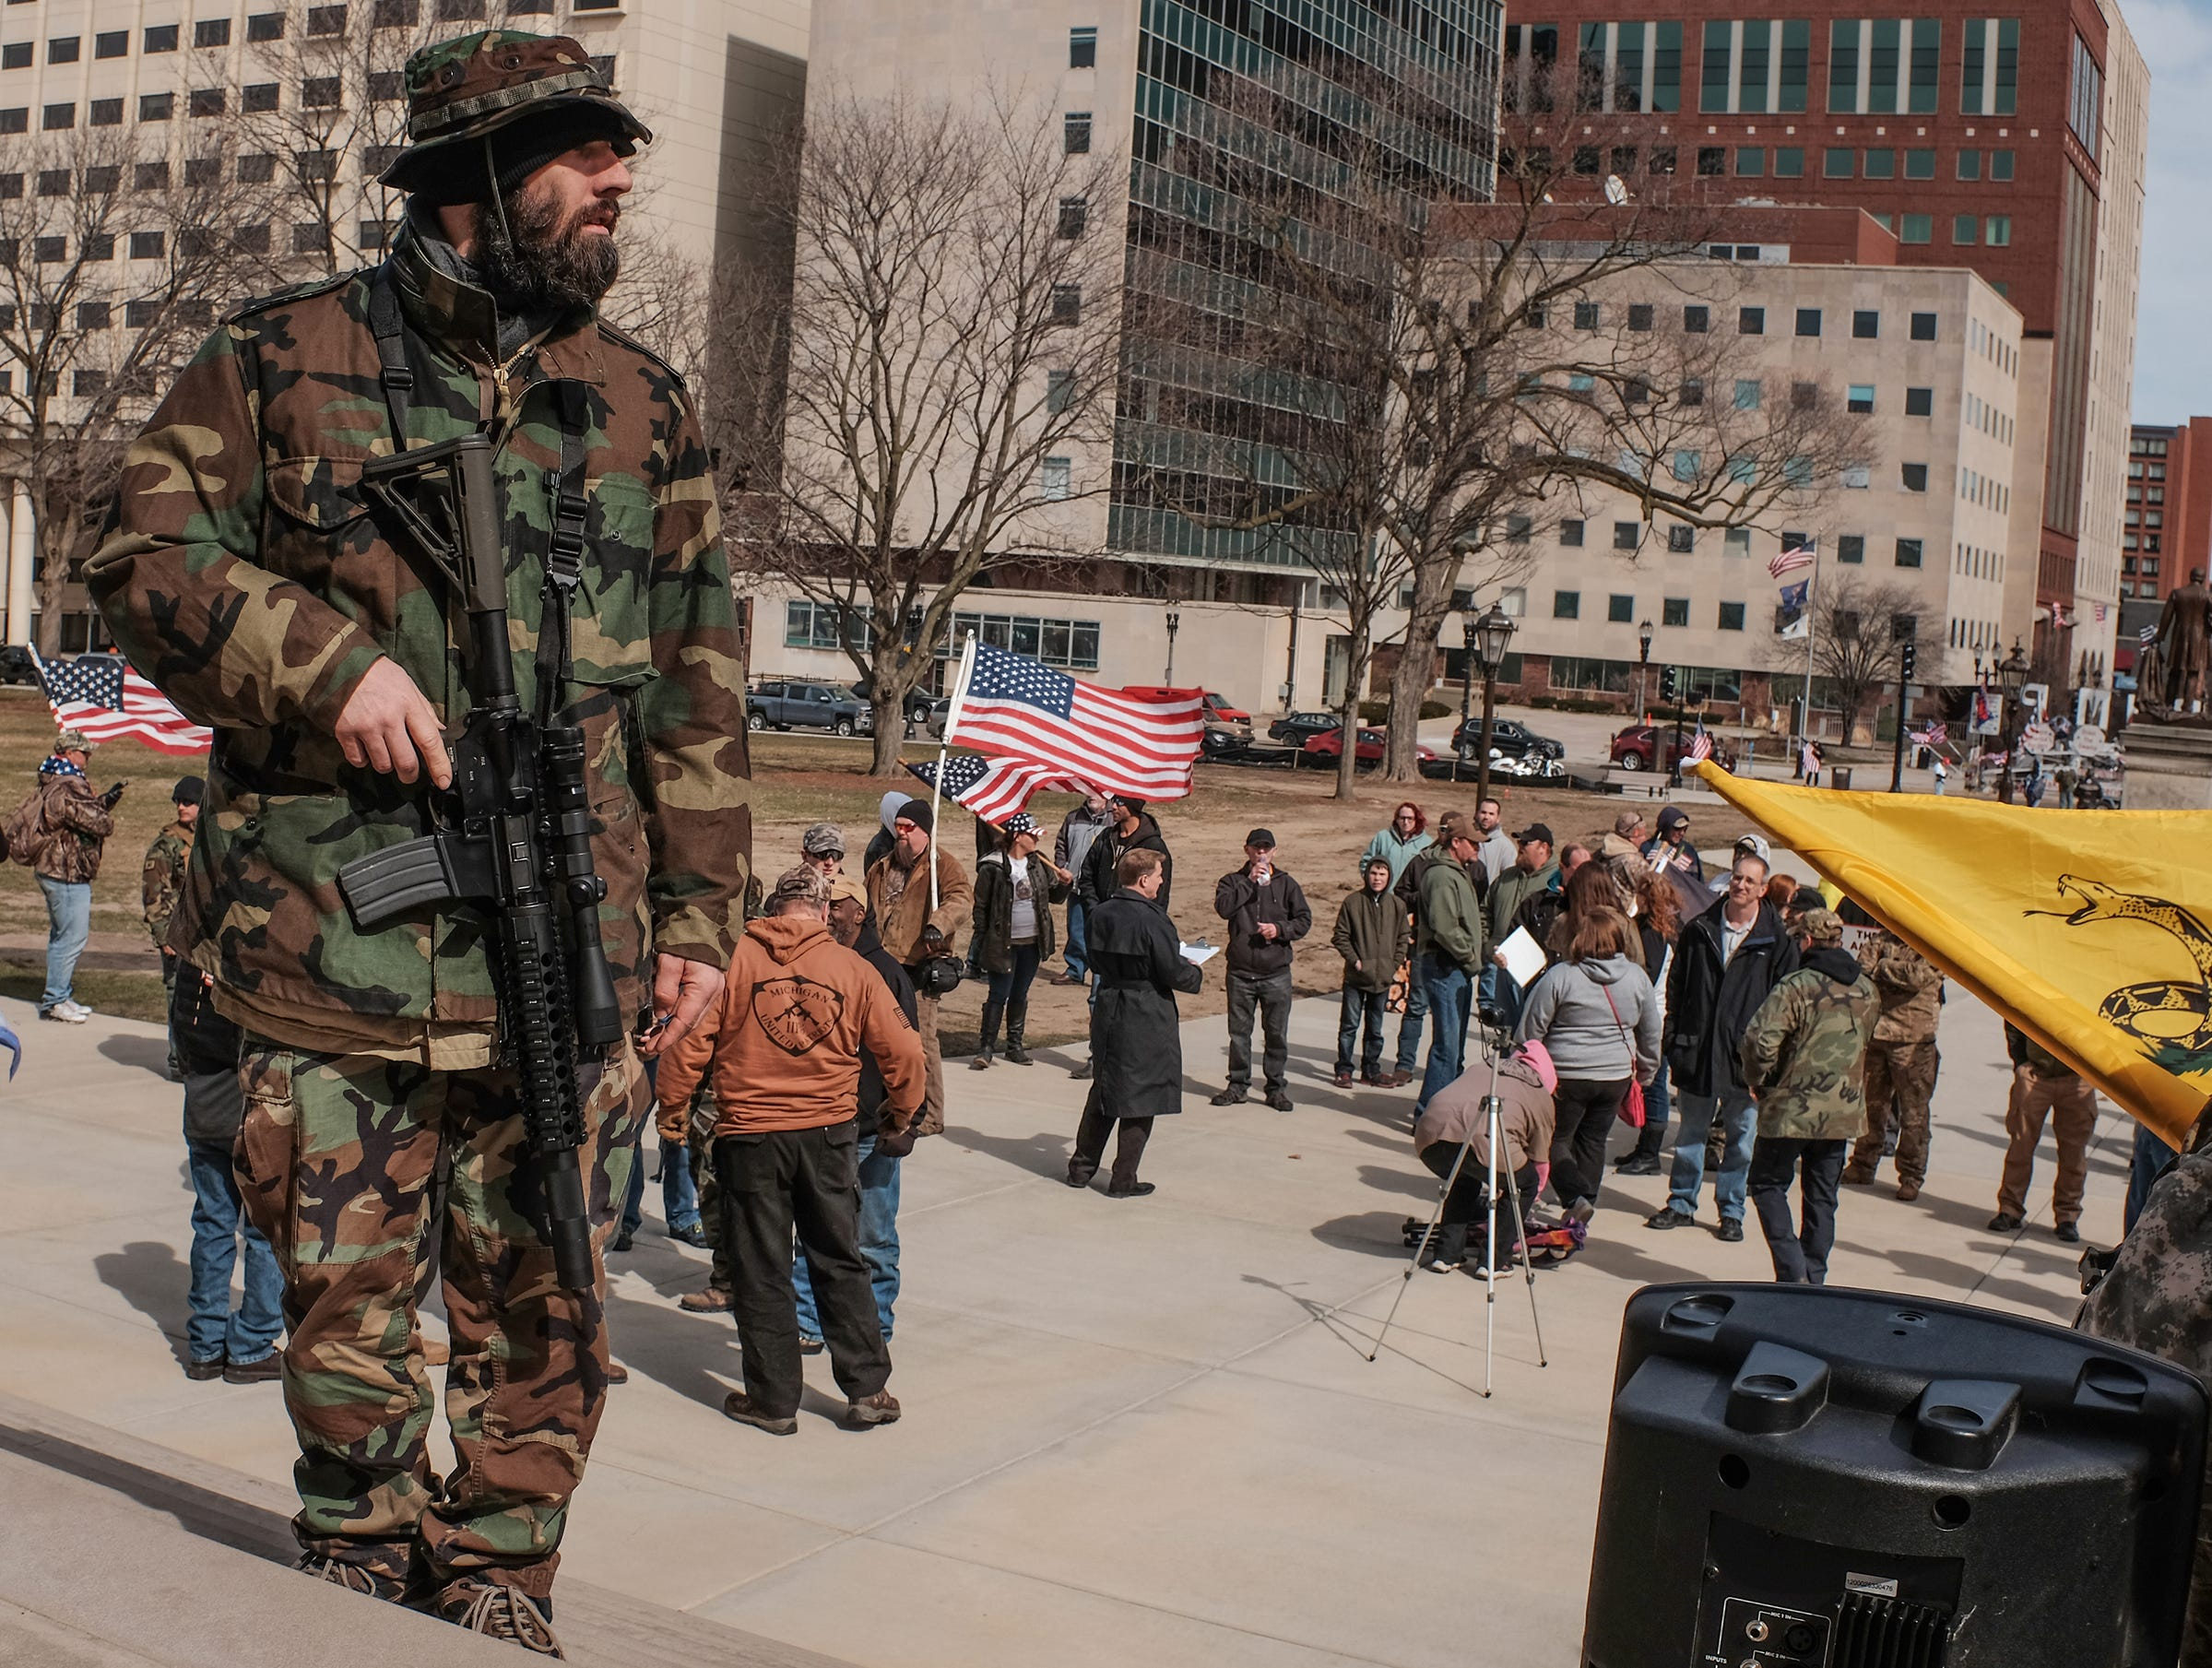 A man in camo clothing openly carries a weapon at a pro Second Amendment rally at the state Capitol in Lansing, Michigan on Saturday, March 24, 2018.